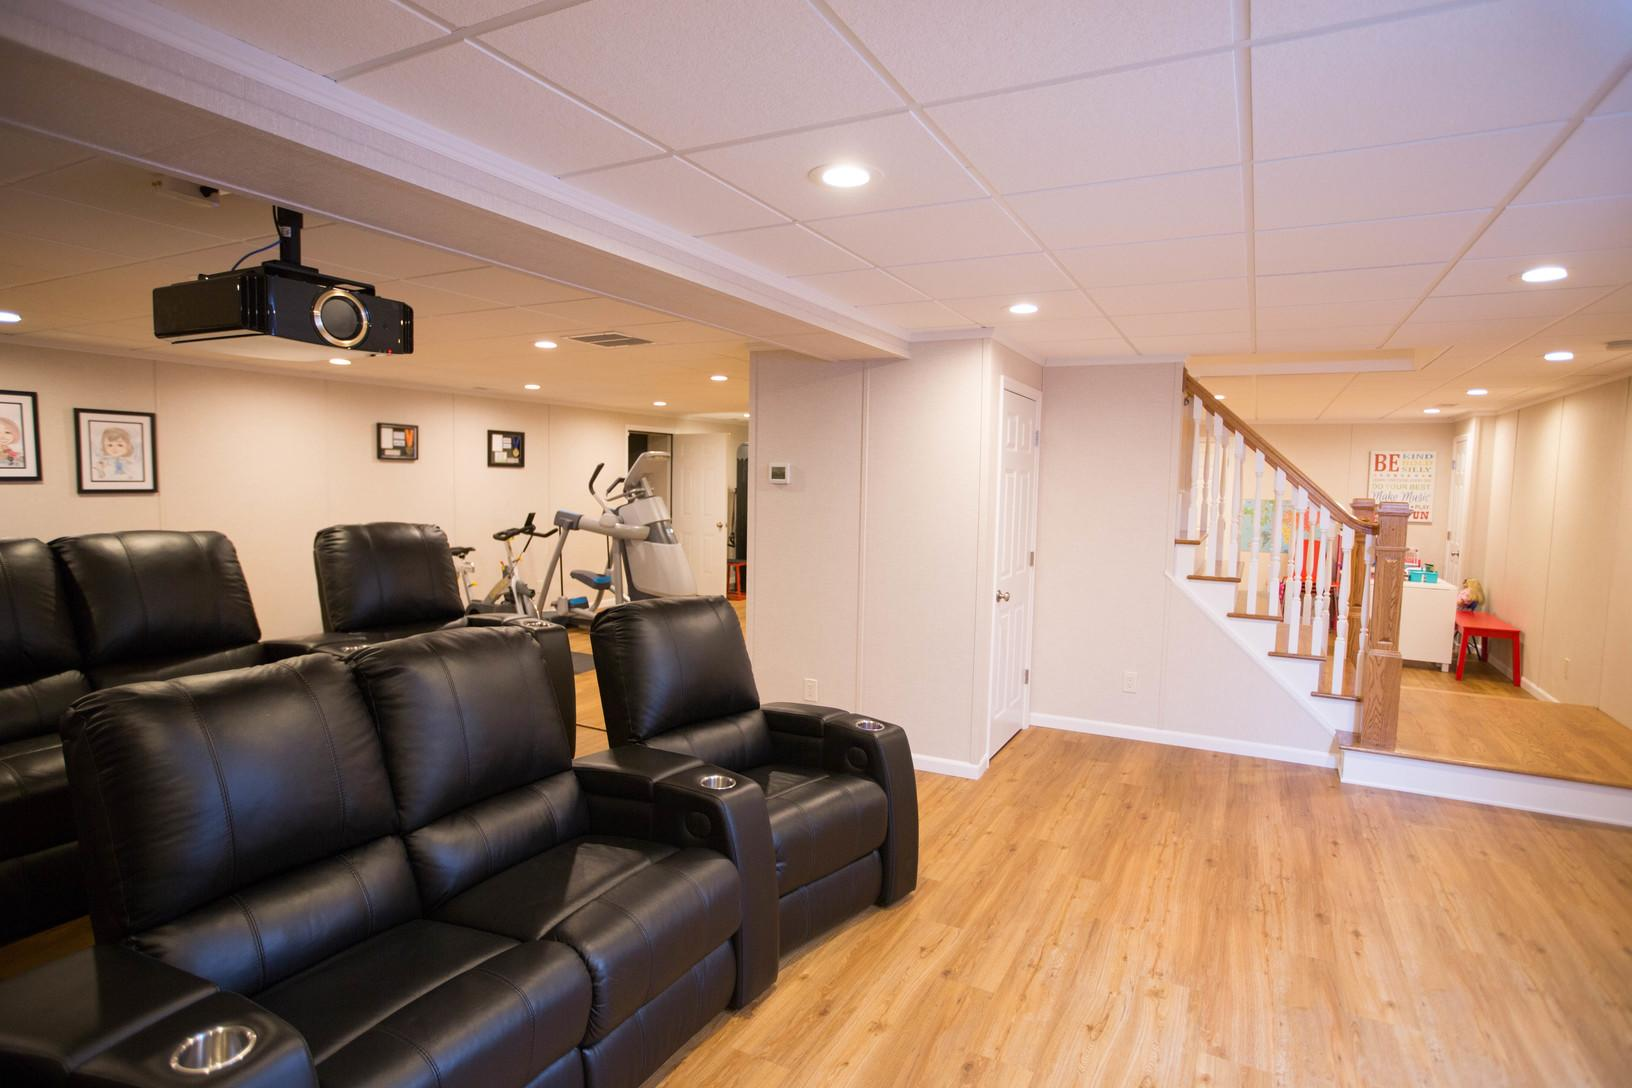 Basement Home Theater - AFTER